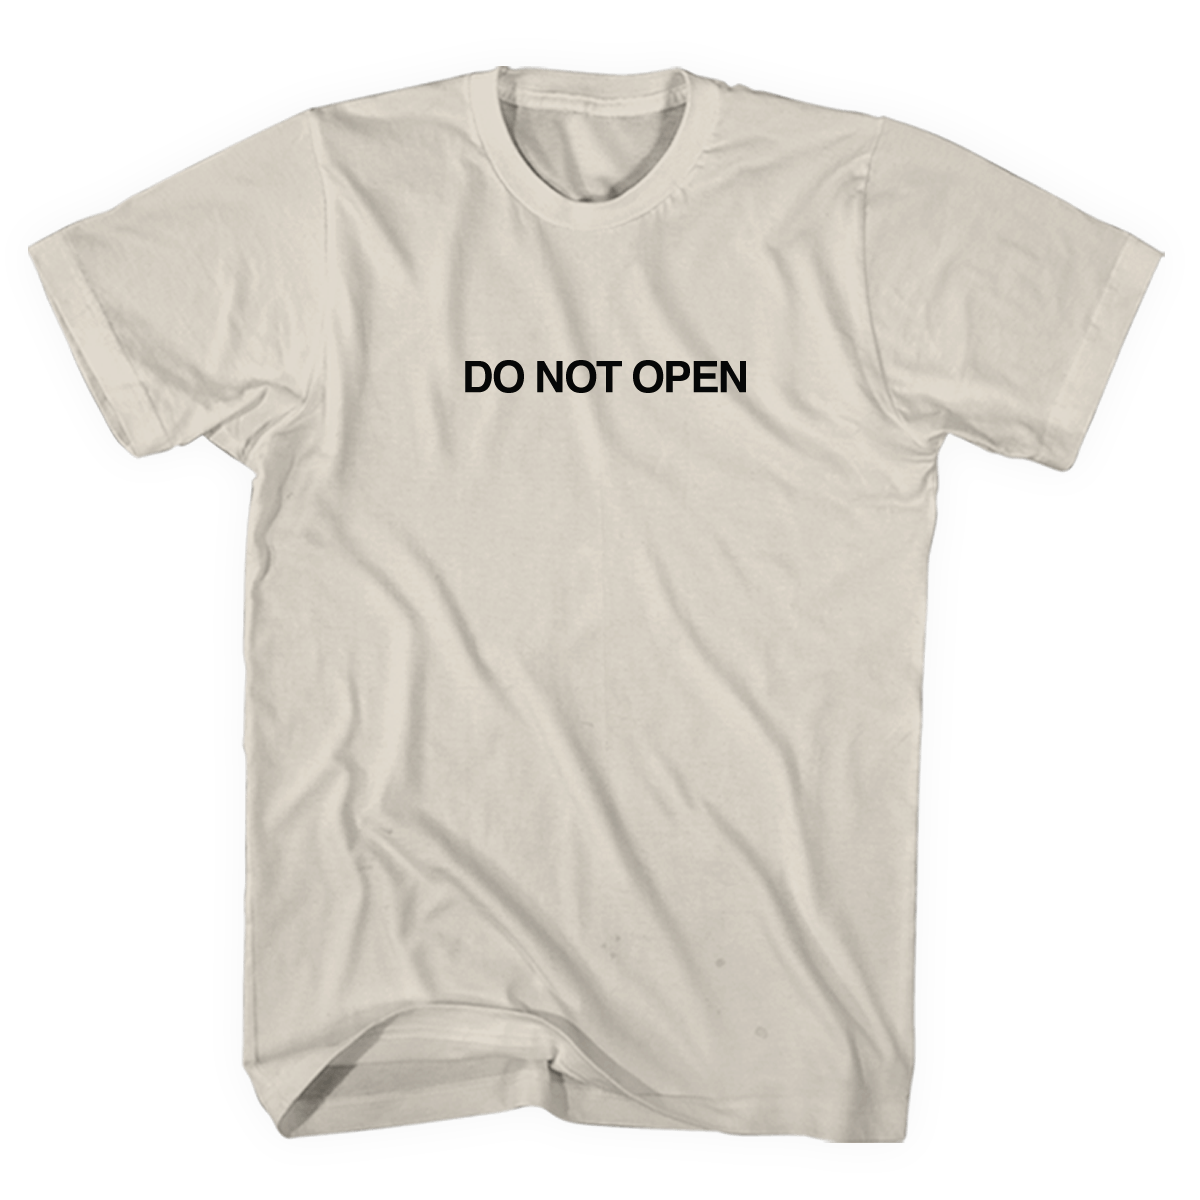 Memories Do Not Open Tour Tee - Black Ink - The Chainsmokers